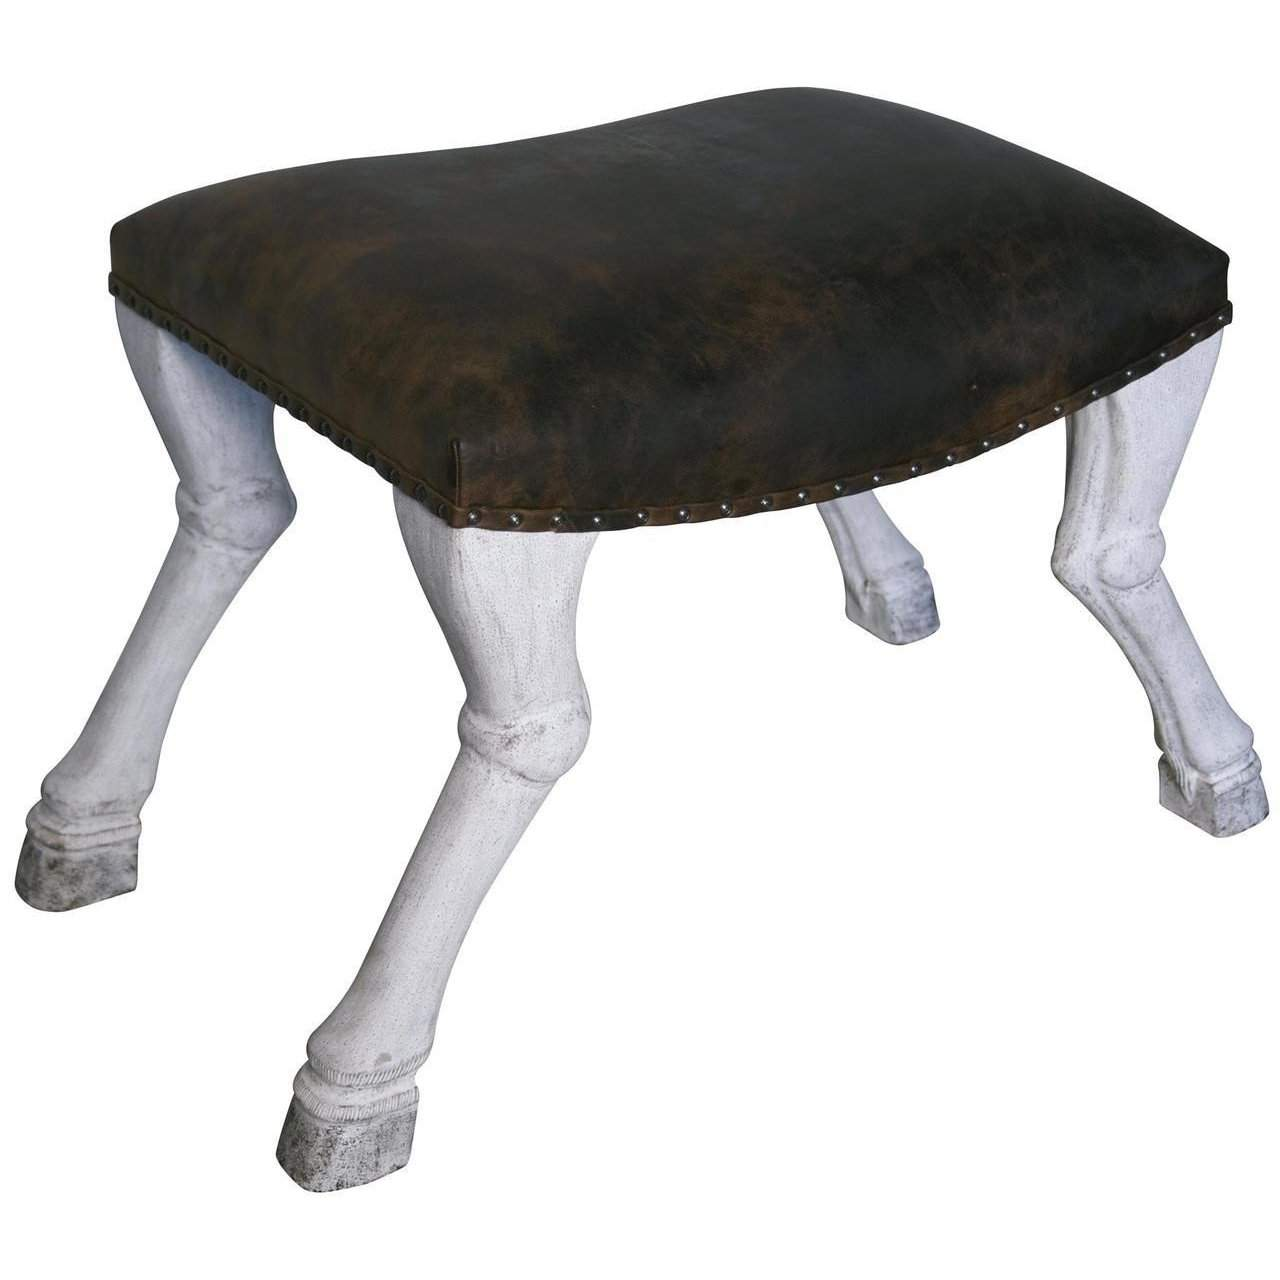 Noir Claw Leg Saddle Stool w/ Leather, White Weathered